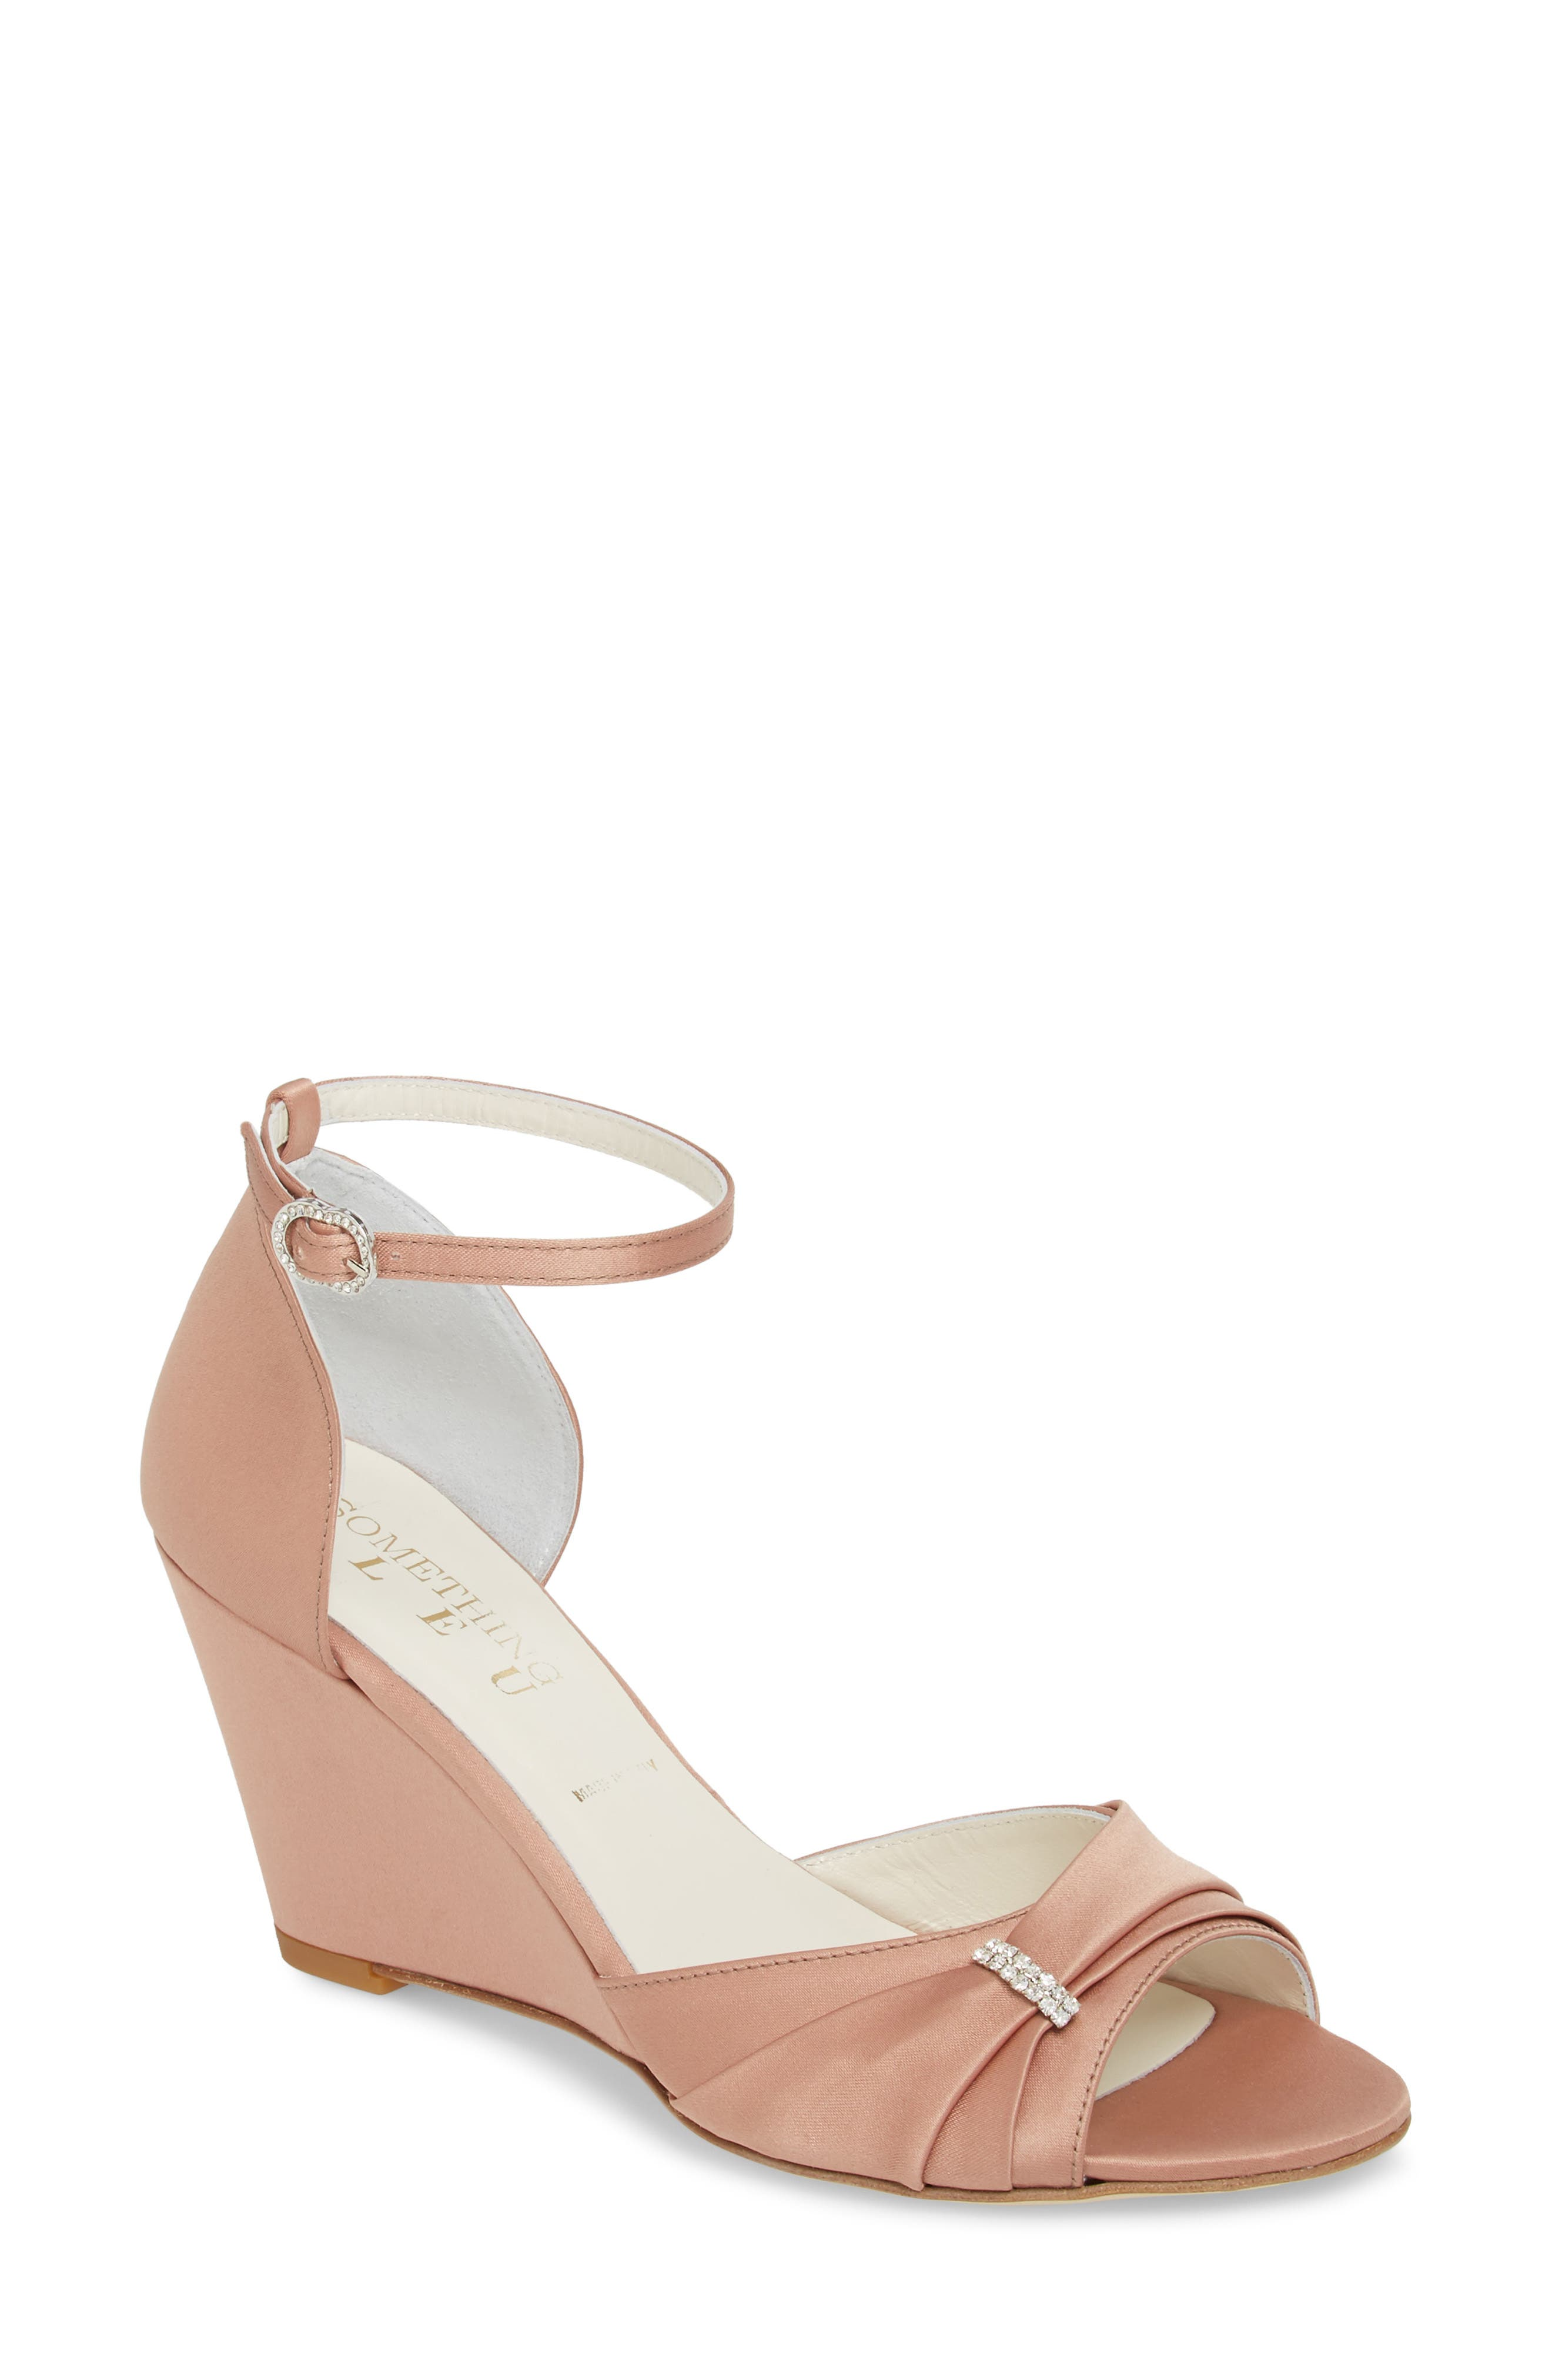 Queenie Ankle Strap Wedge Sandal,                         Main,                         color, BLUSH SATIN